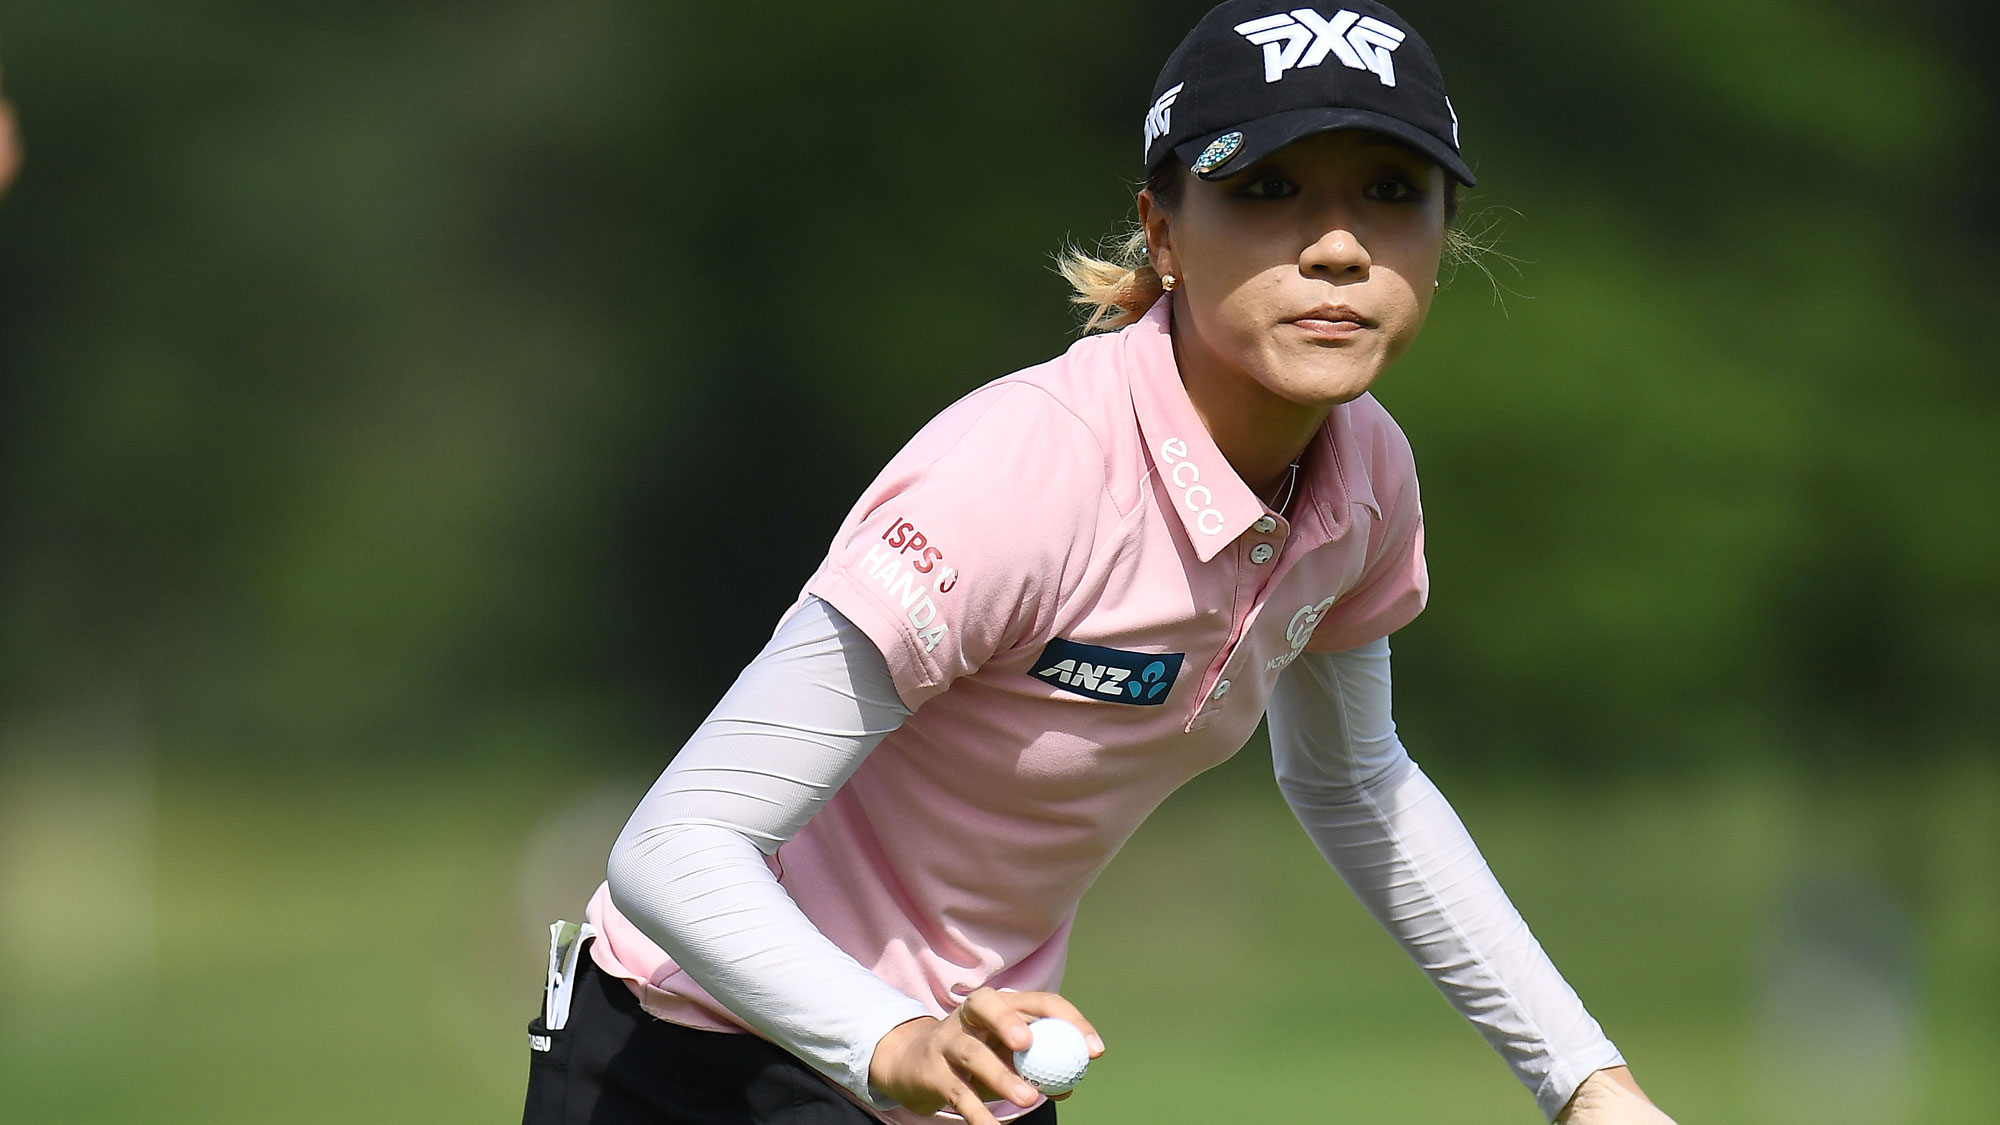 Lydia Ko After a Birdie at the Meijer LPGA Classic